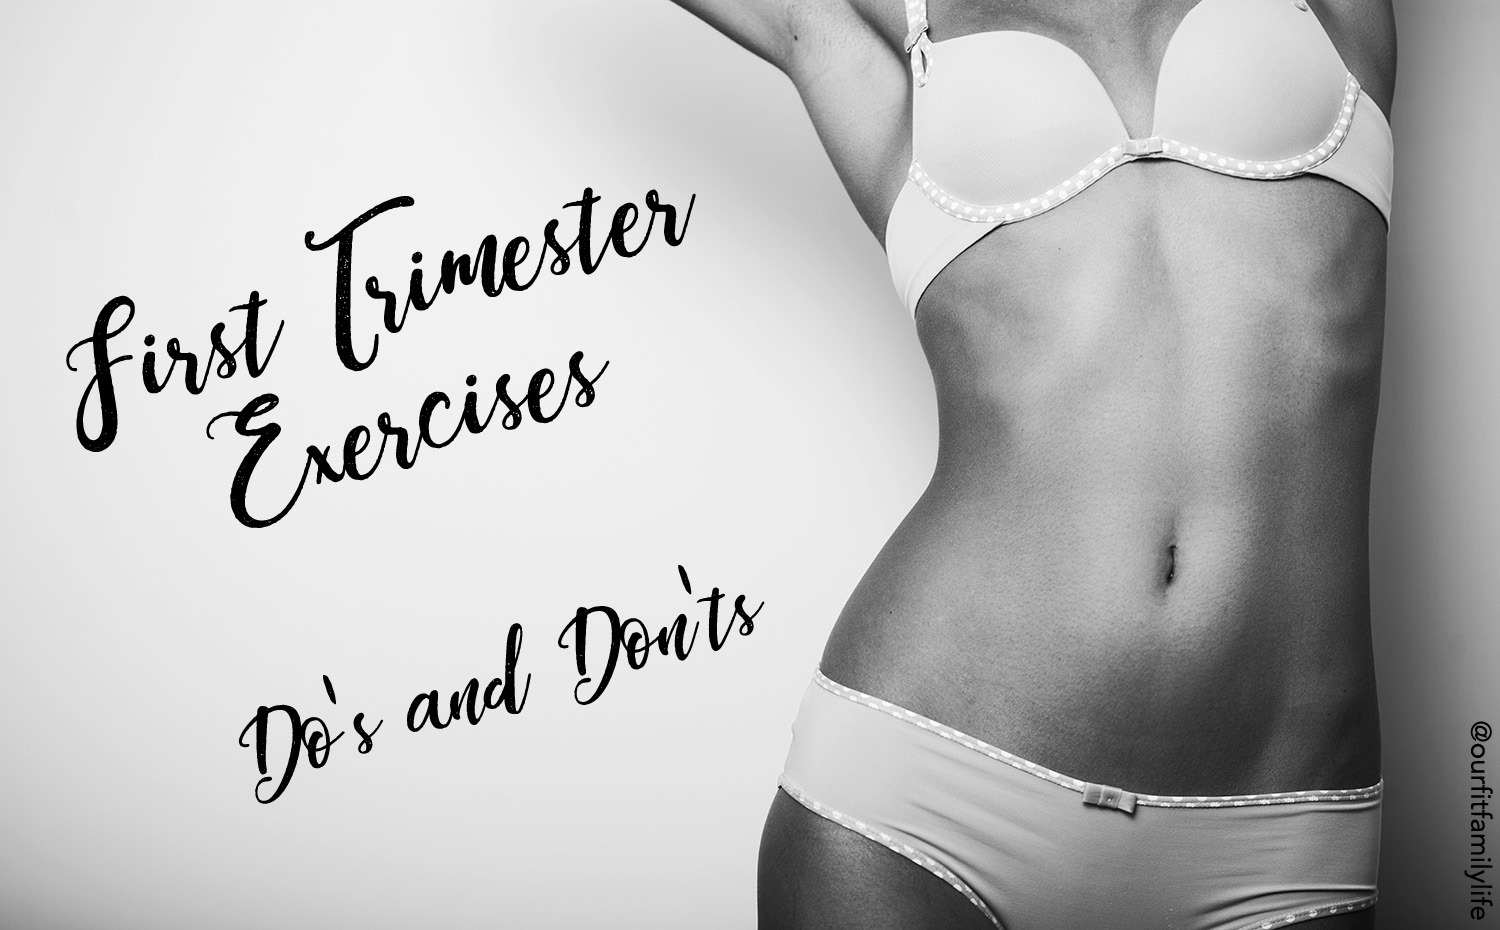 Pregnancy exercise first trimester